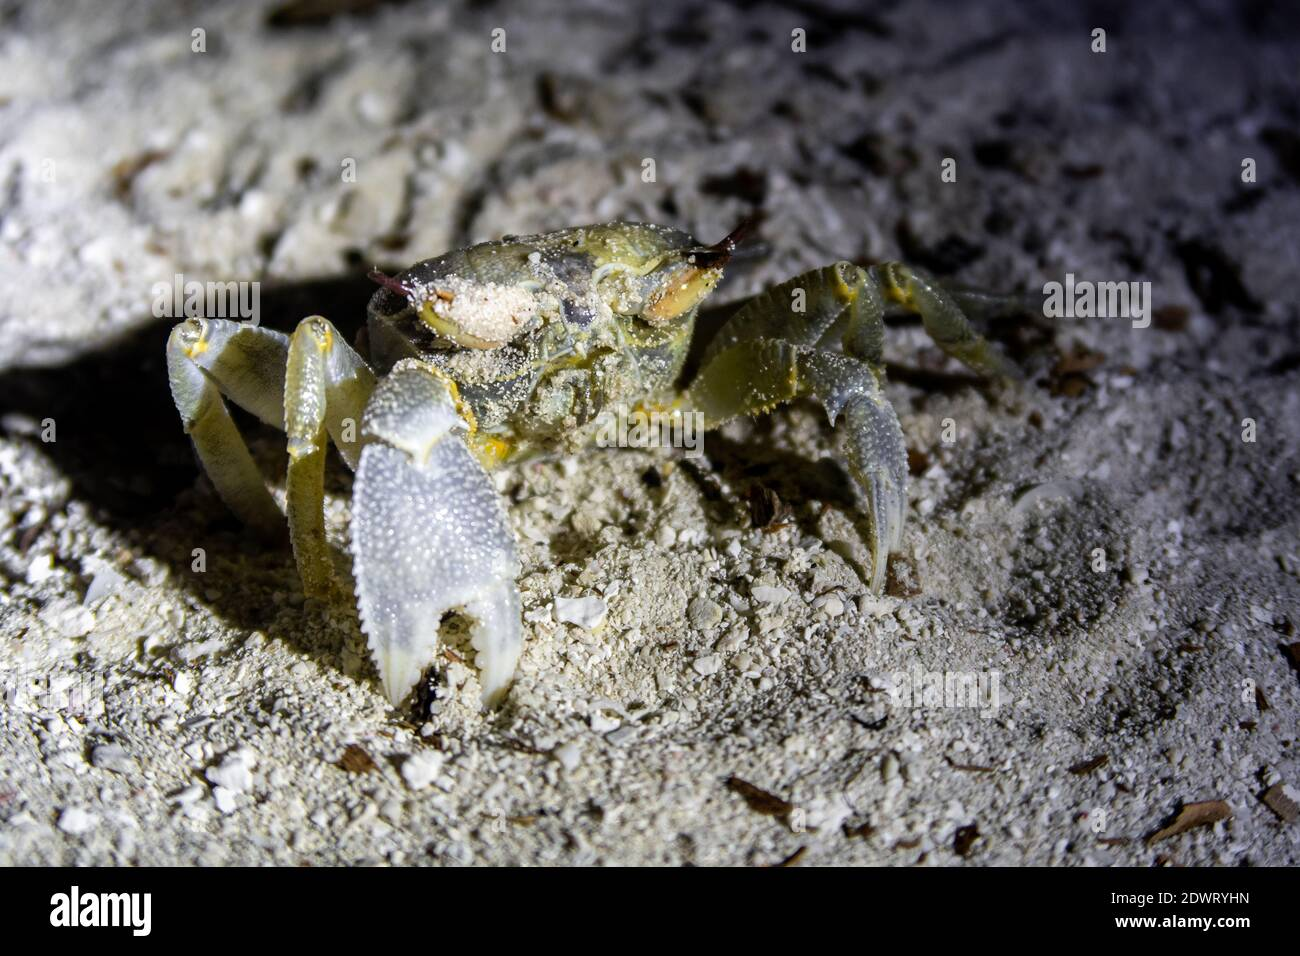 Horned ghost crab (Ocypode ceratophthalma) standing on sandy beach at night, Maldives, close-up. Stock Photo